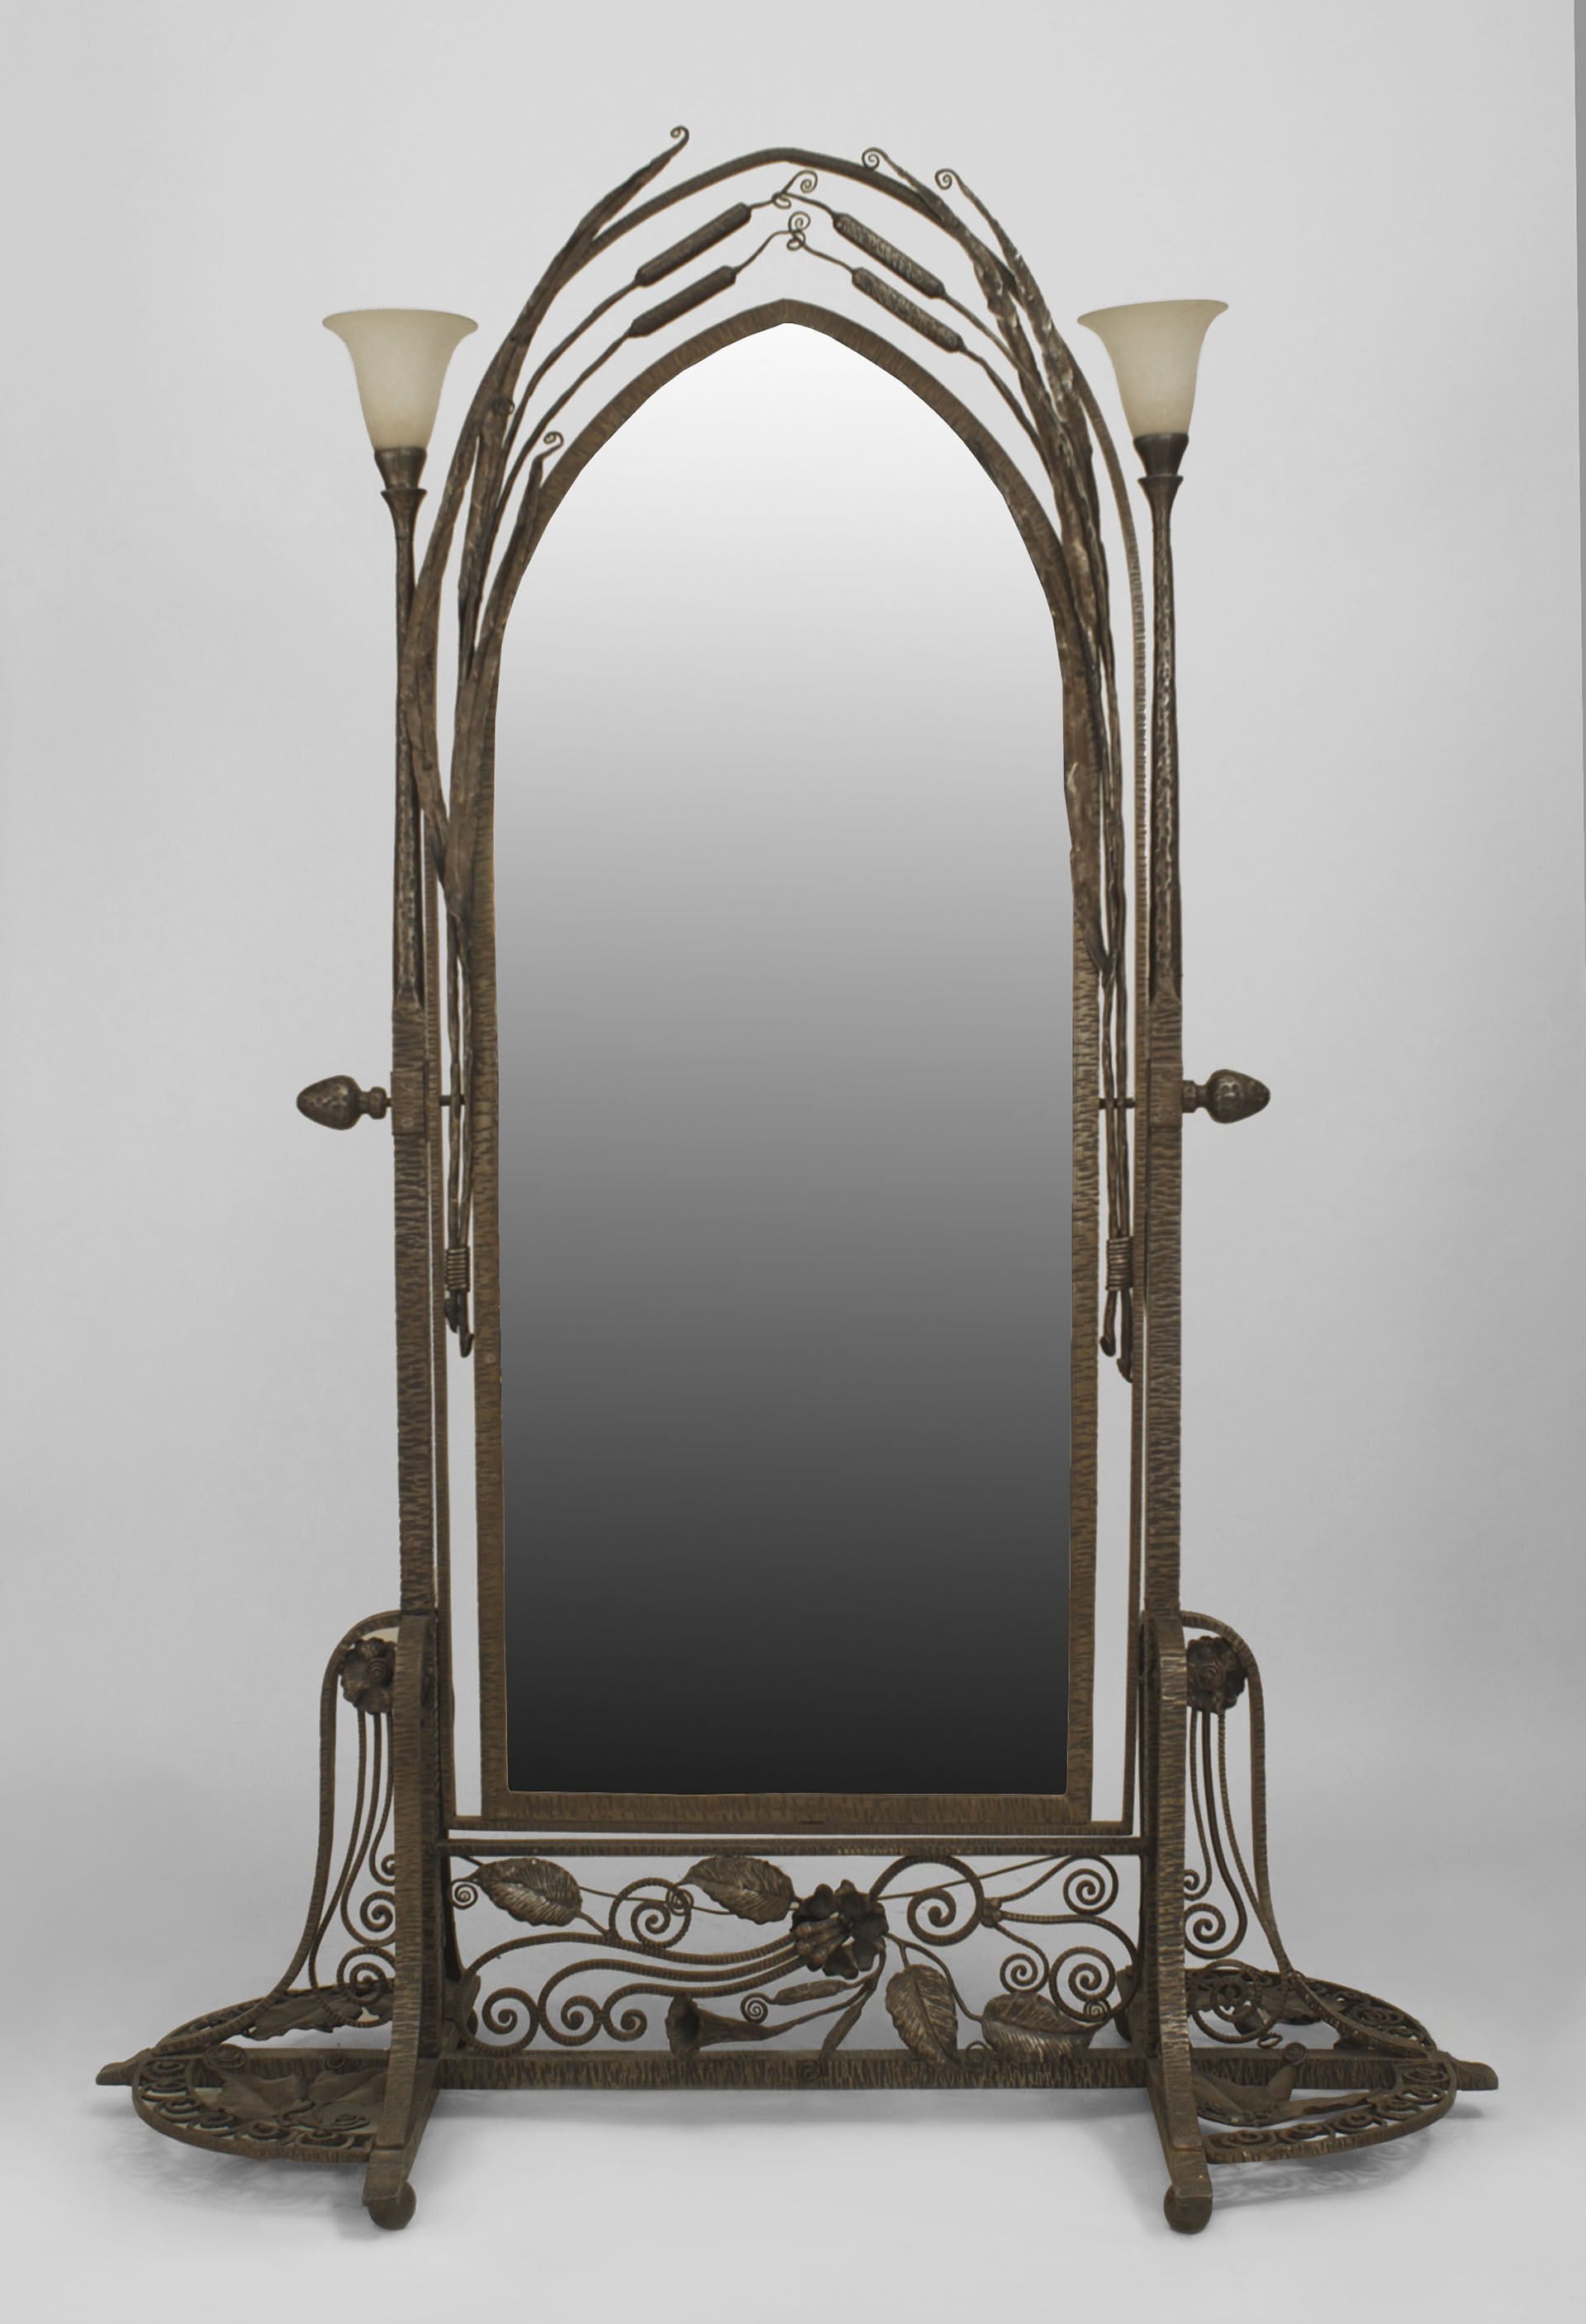 Lg French Art Deco Wall Metal Mirror 38h Decor Pinterest With Art Deco Full Length Mirror (View 3 of 15)